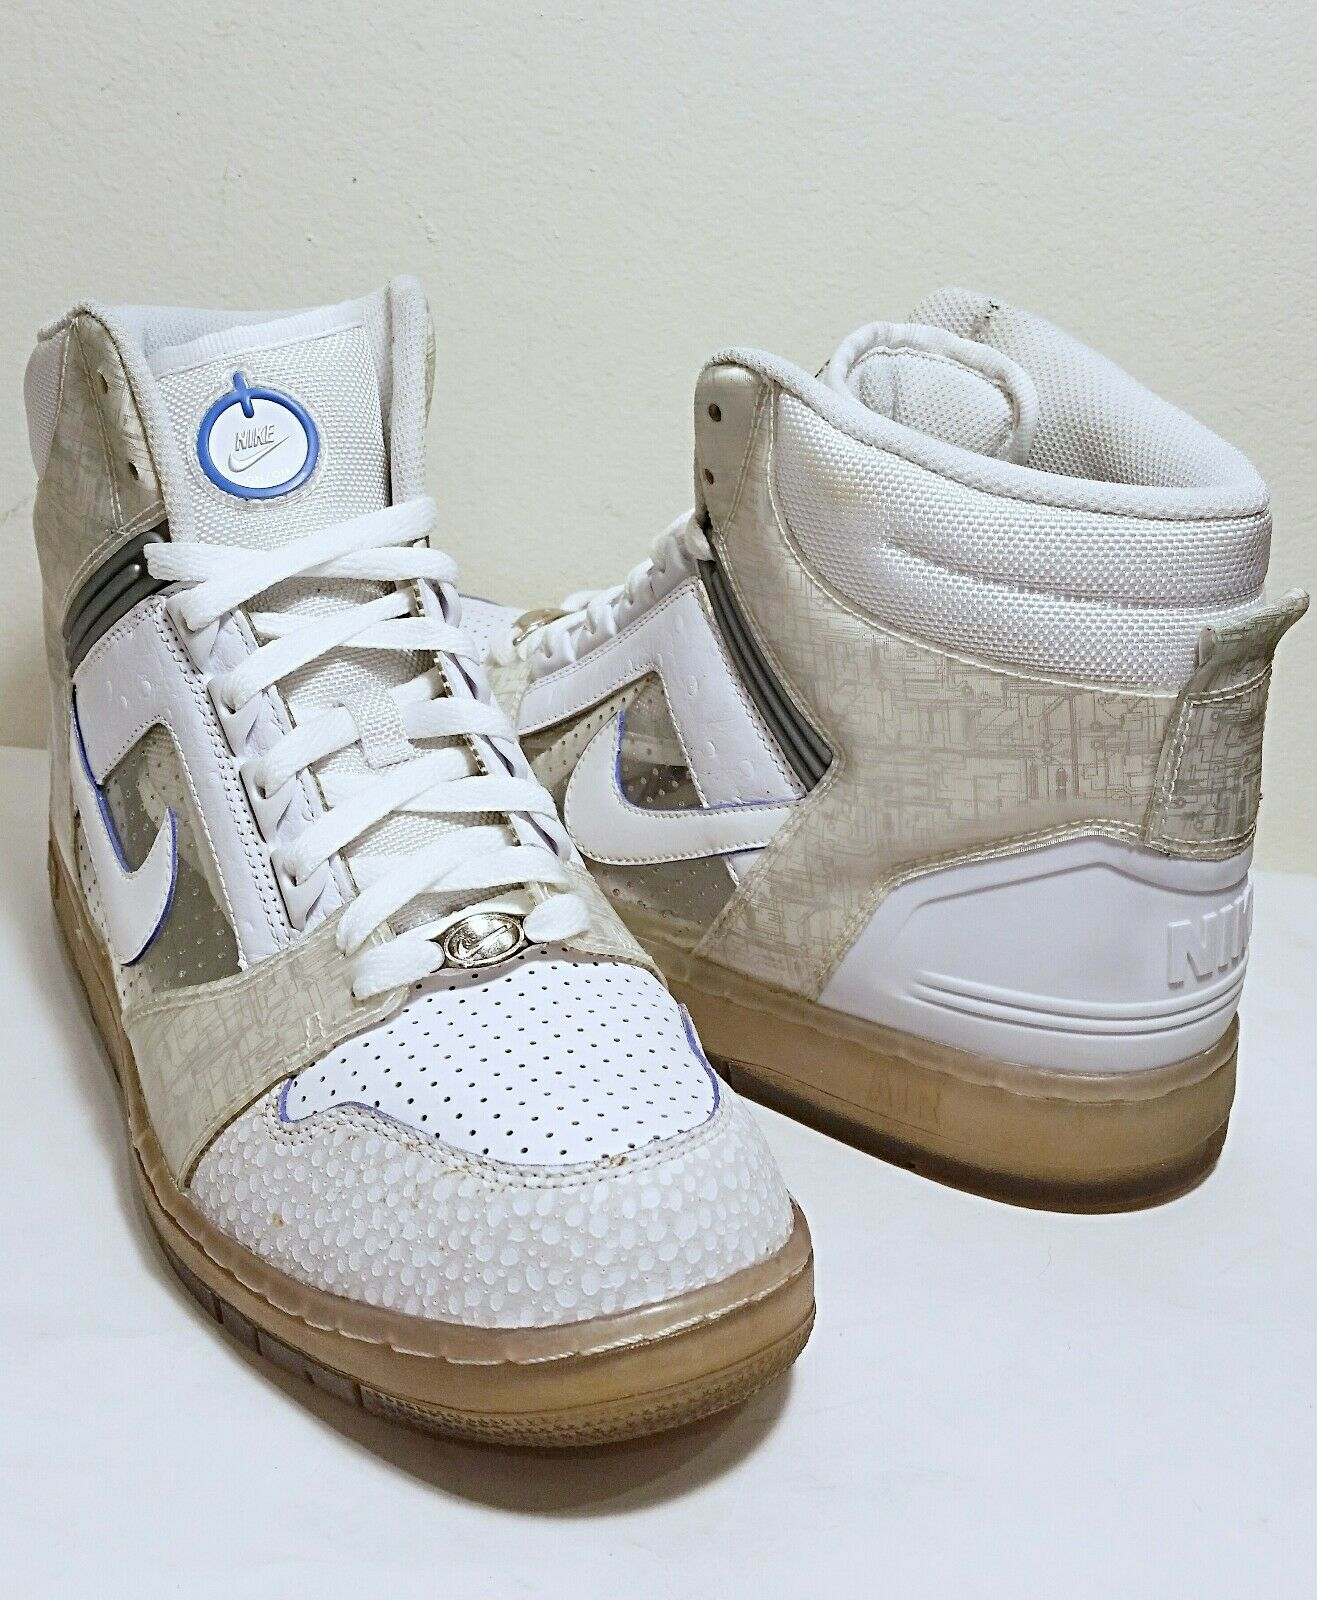 08 Nike Air Force II Nintendo Wii High Premium Basketball Shoes Size 11.5 *EUC